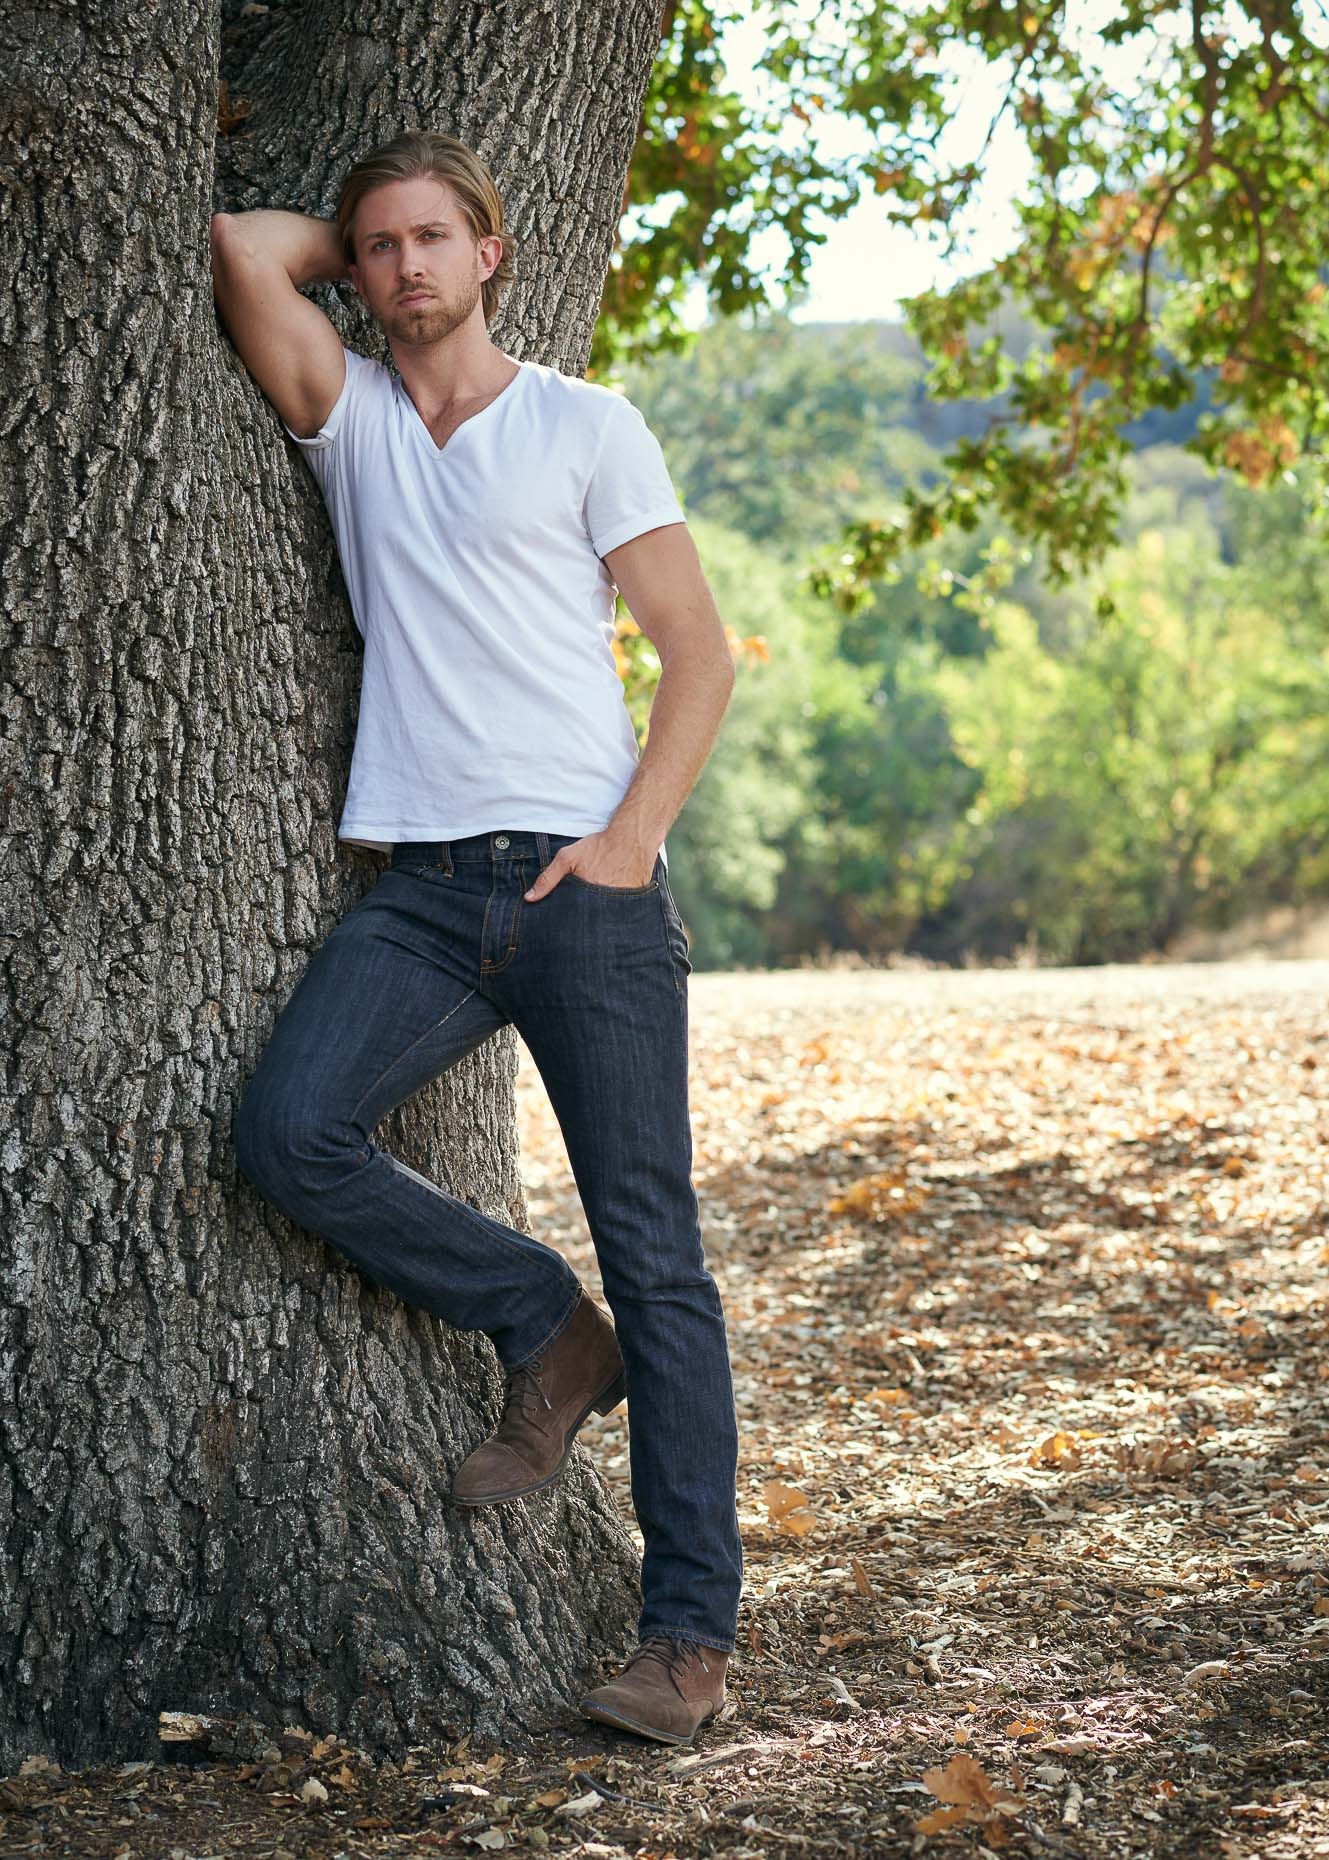 Man leaning against a tree in Malibu, CA.